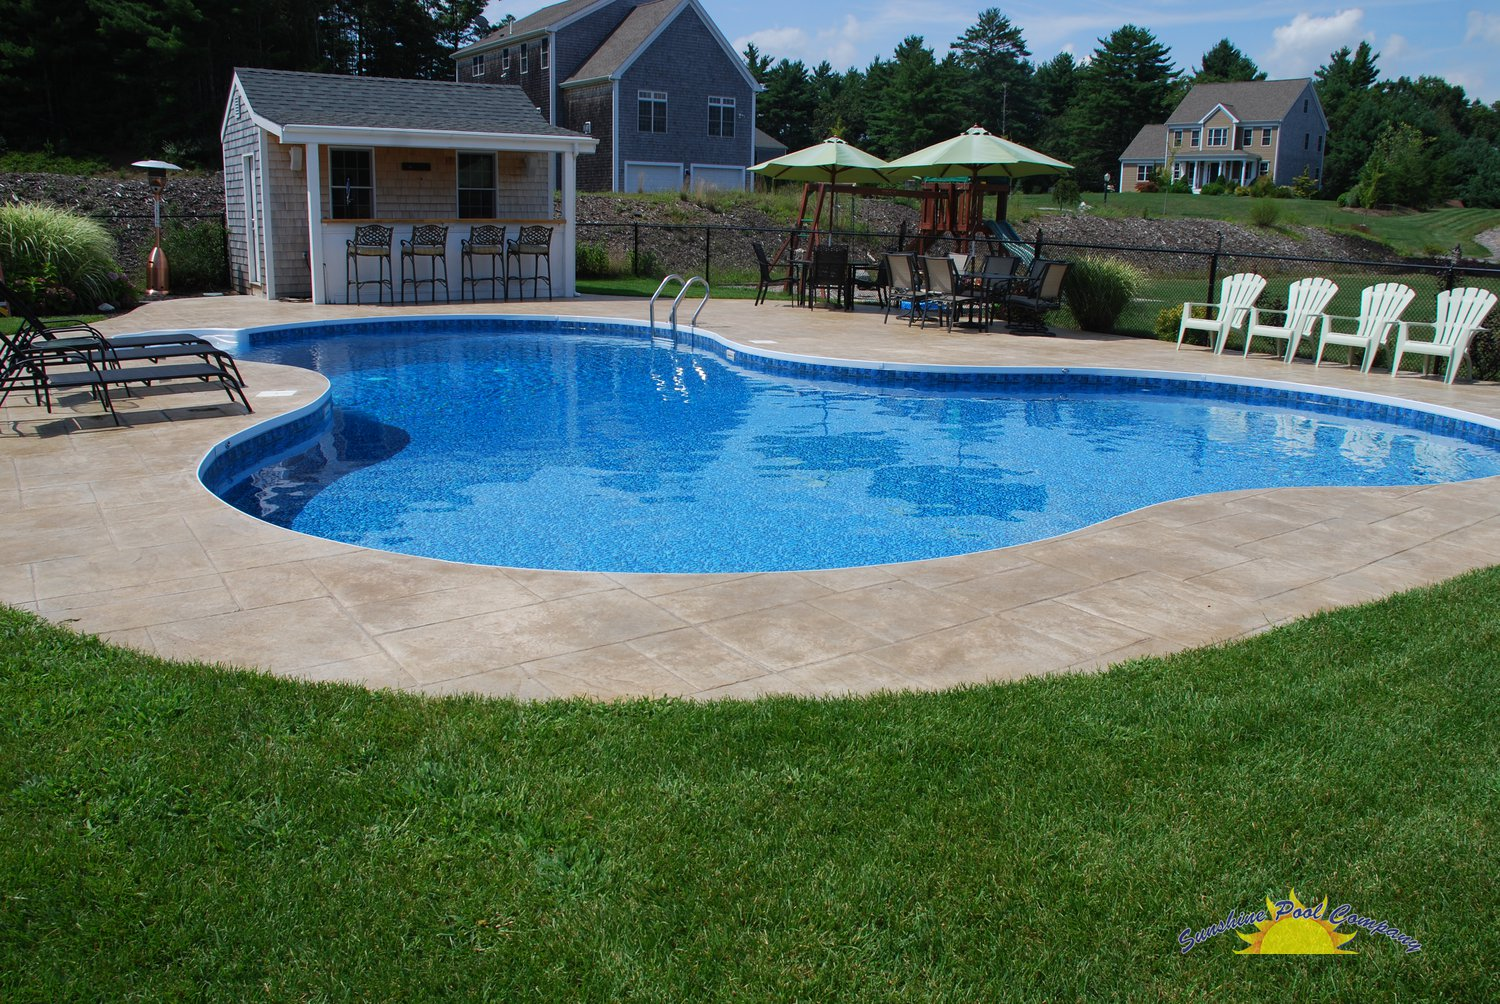 27 Simple Pictures Of Inground Pools Inspiration Images